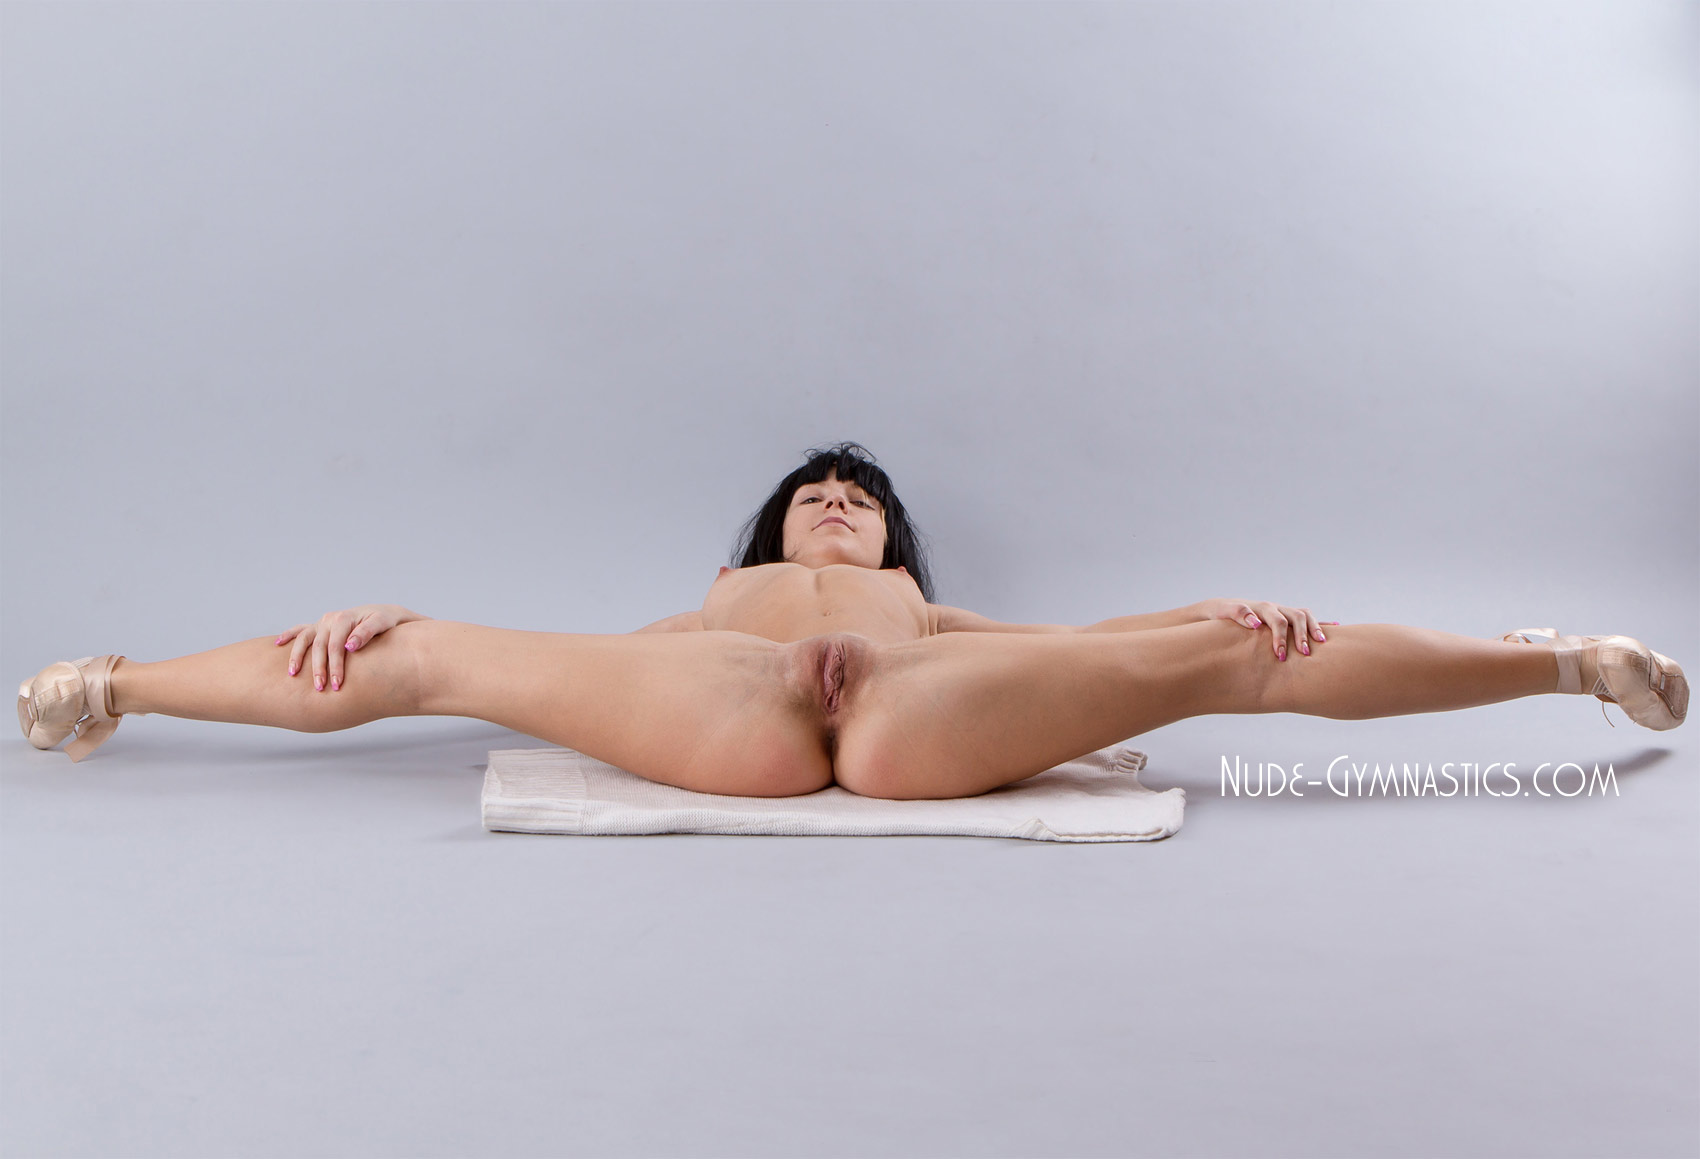 Flexy Naked Gymnasts 93